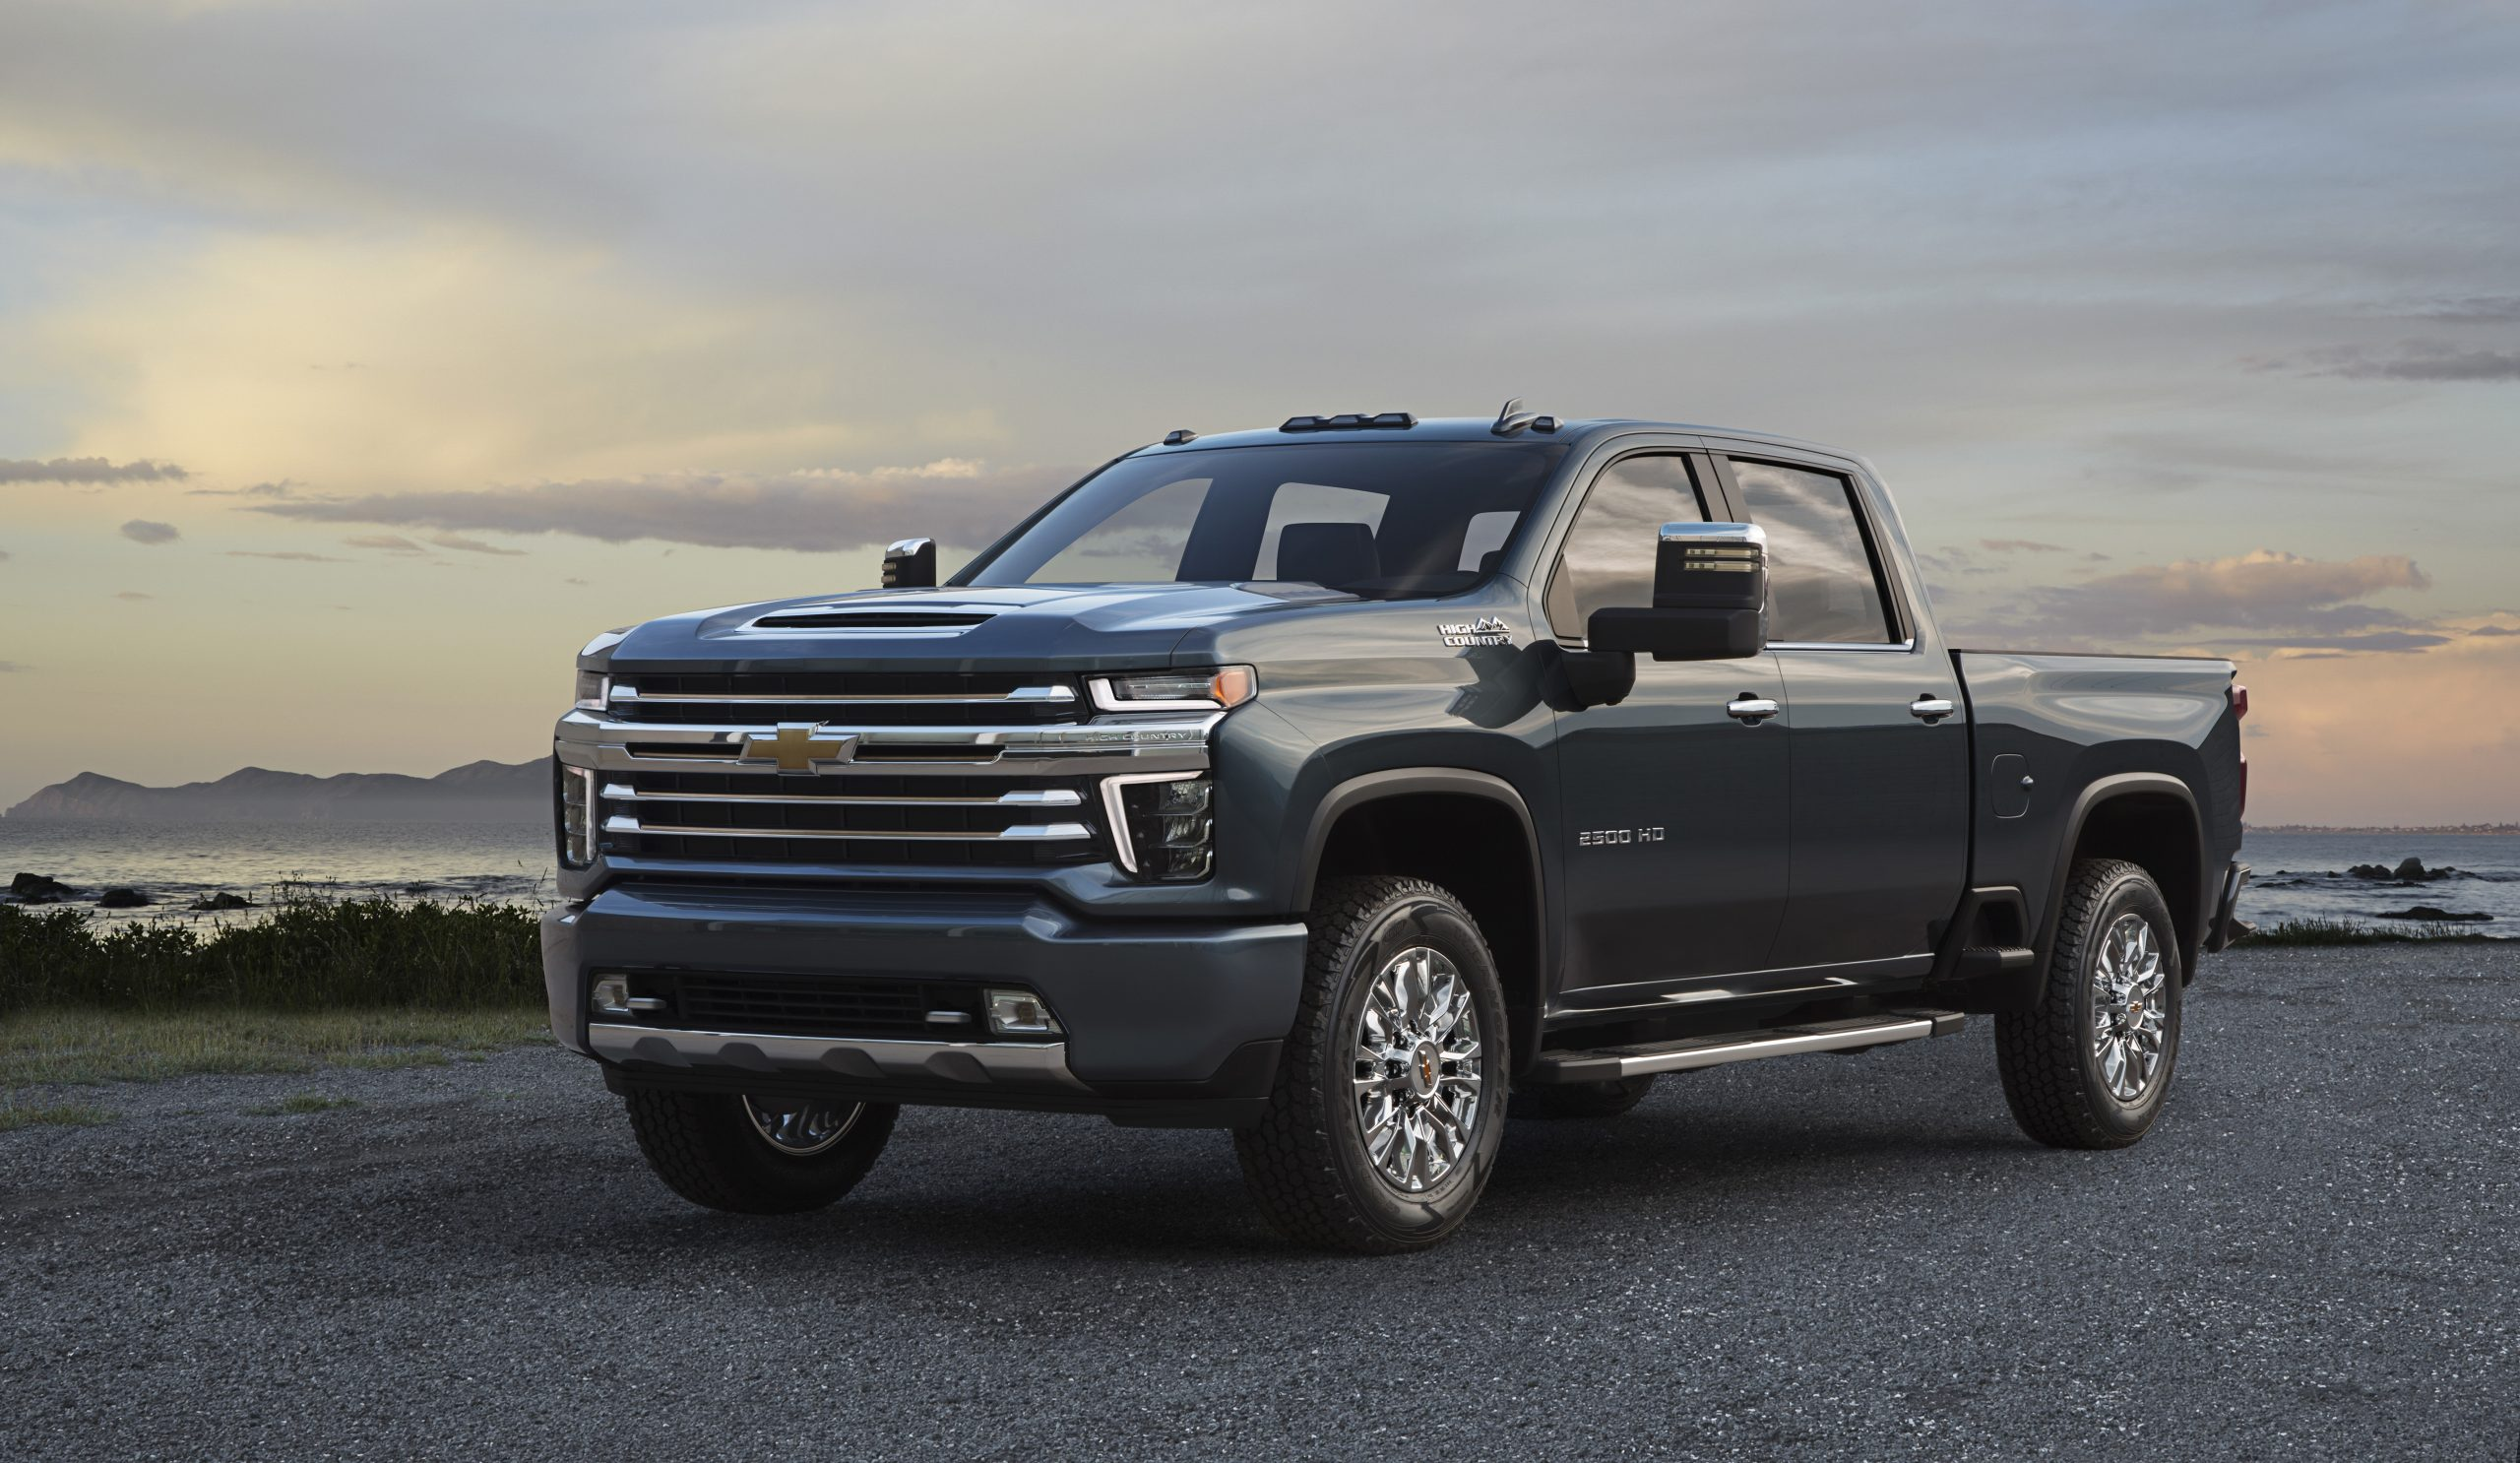 2020 Chevrolet Hd 2500/3500 Trucks Revealed - Pickup Truck + 2021 Chevrolet Silverado 2500 Owners Manual, Review, Trim Levels